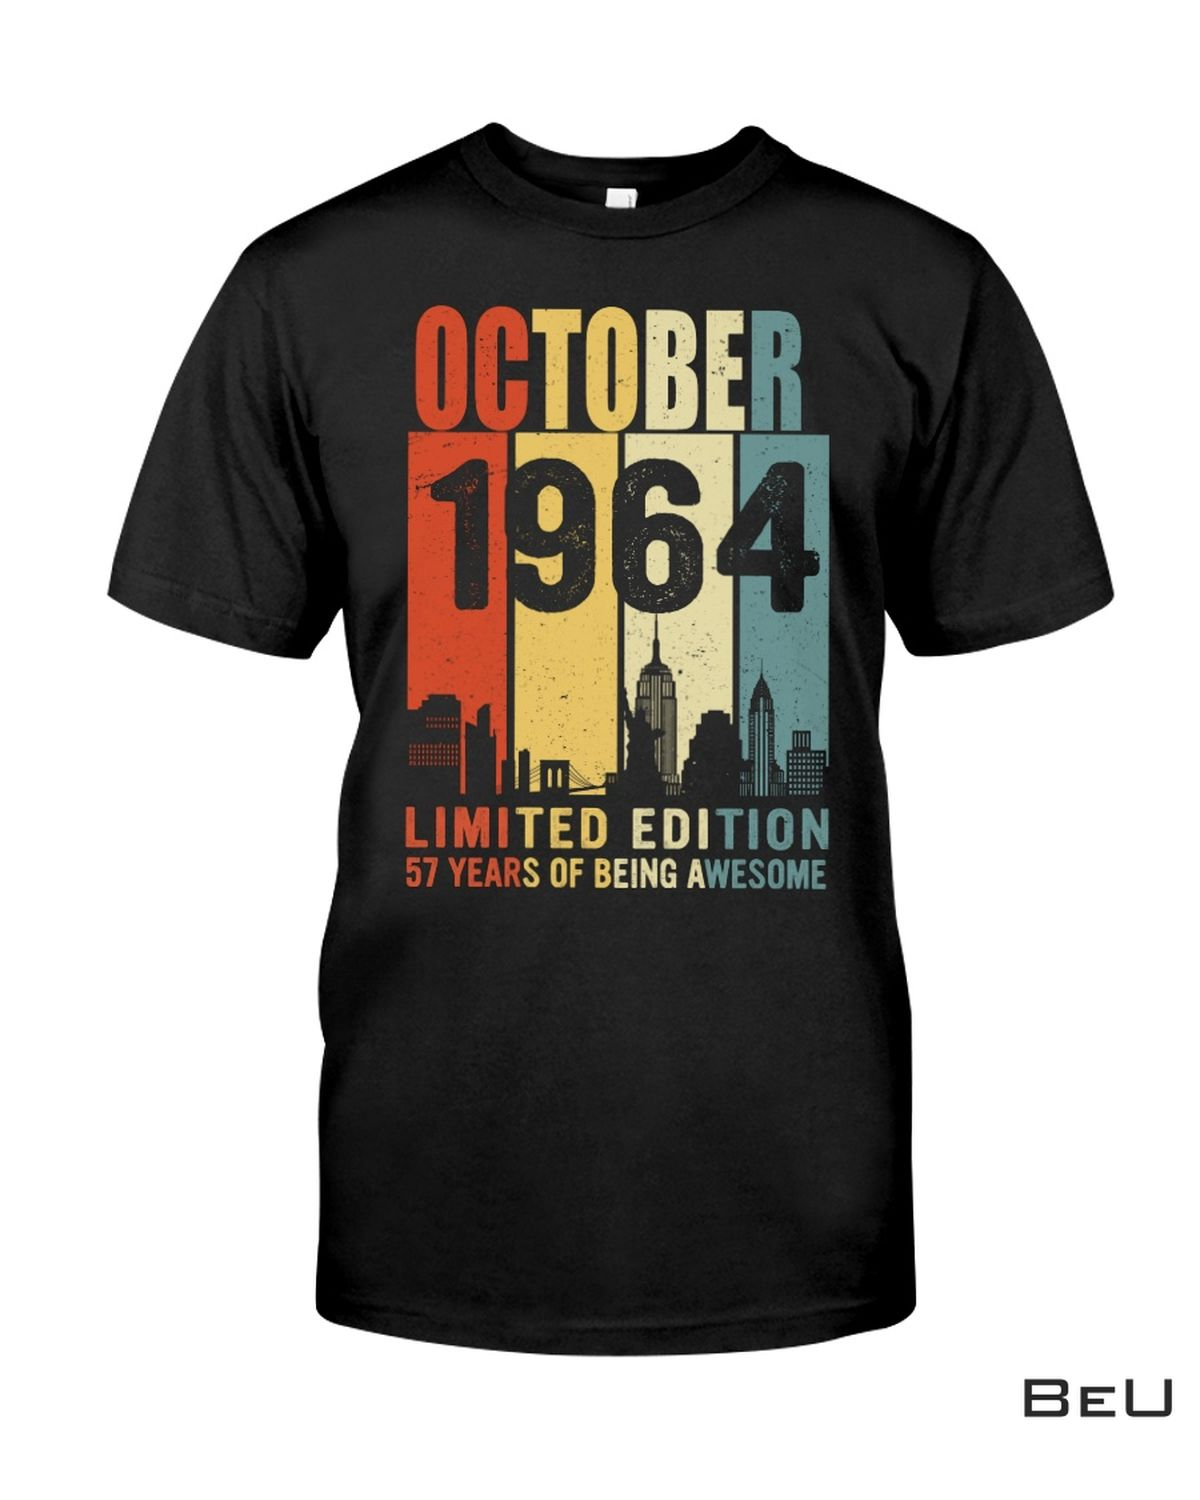 57th Birthday October 1964 Limited Edition Shirt, hoodie